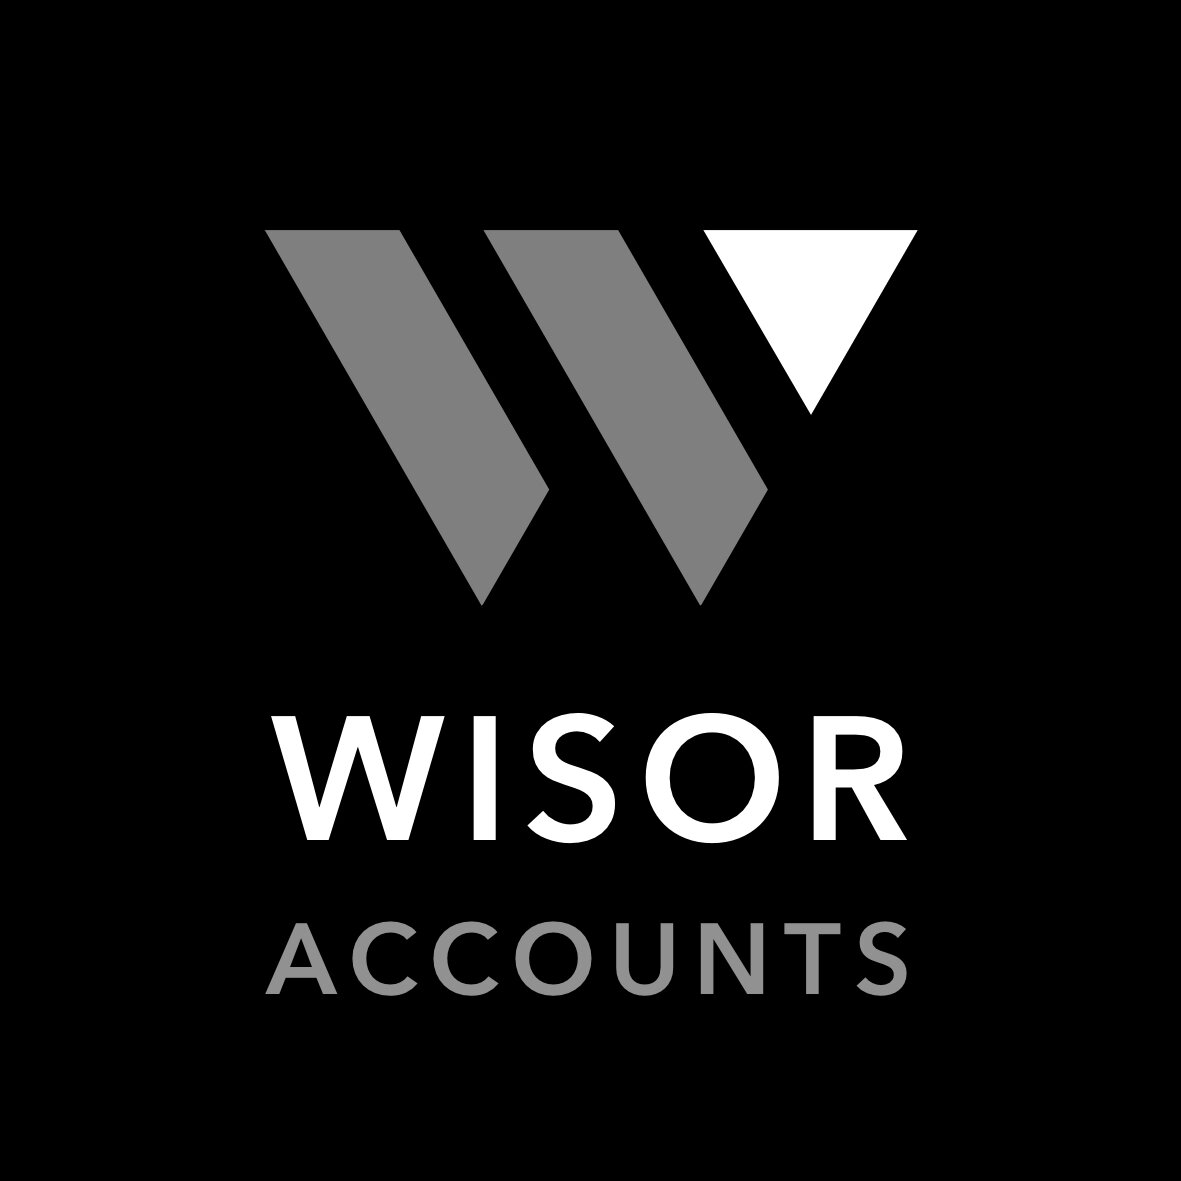 Wisor Accounts Logo.heic  For download click on image.